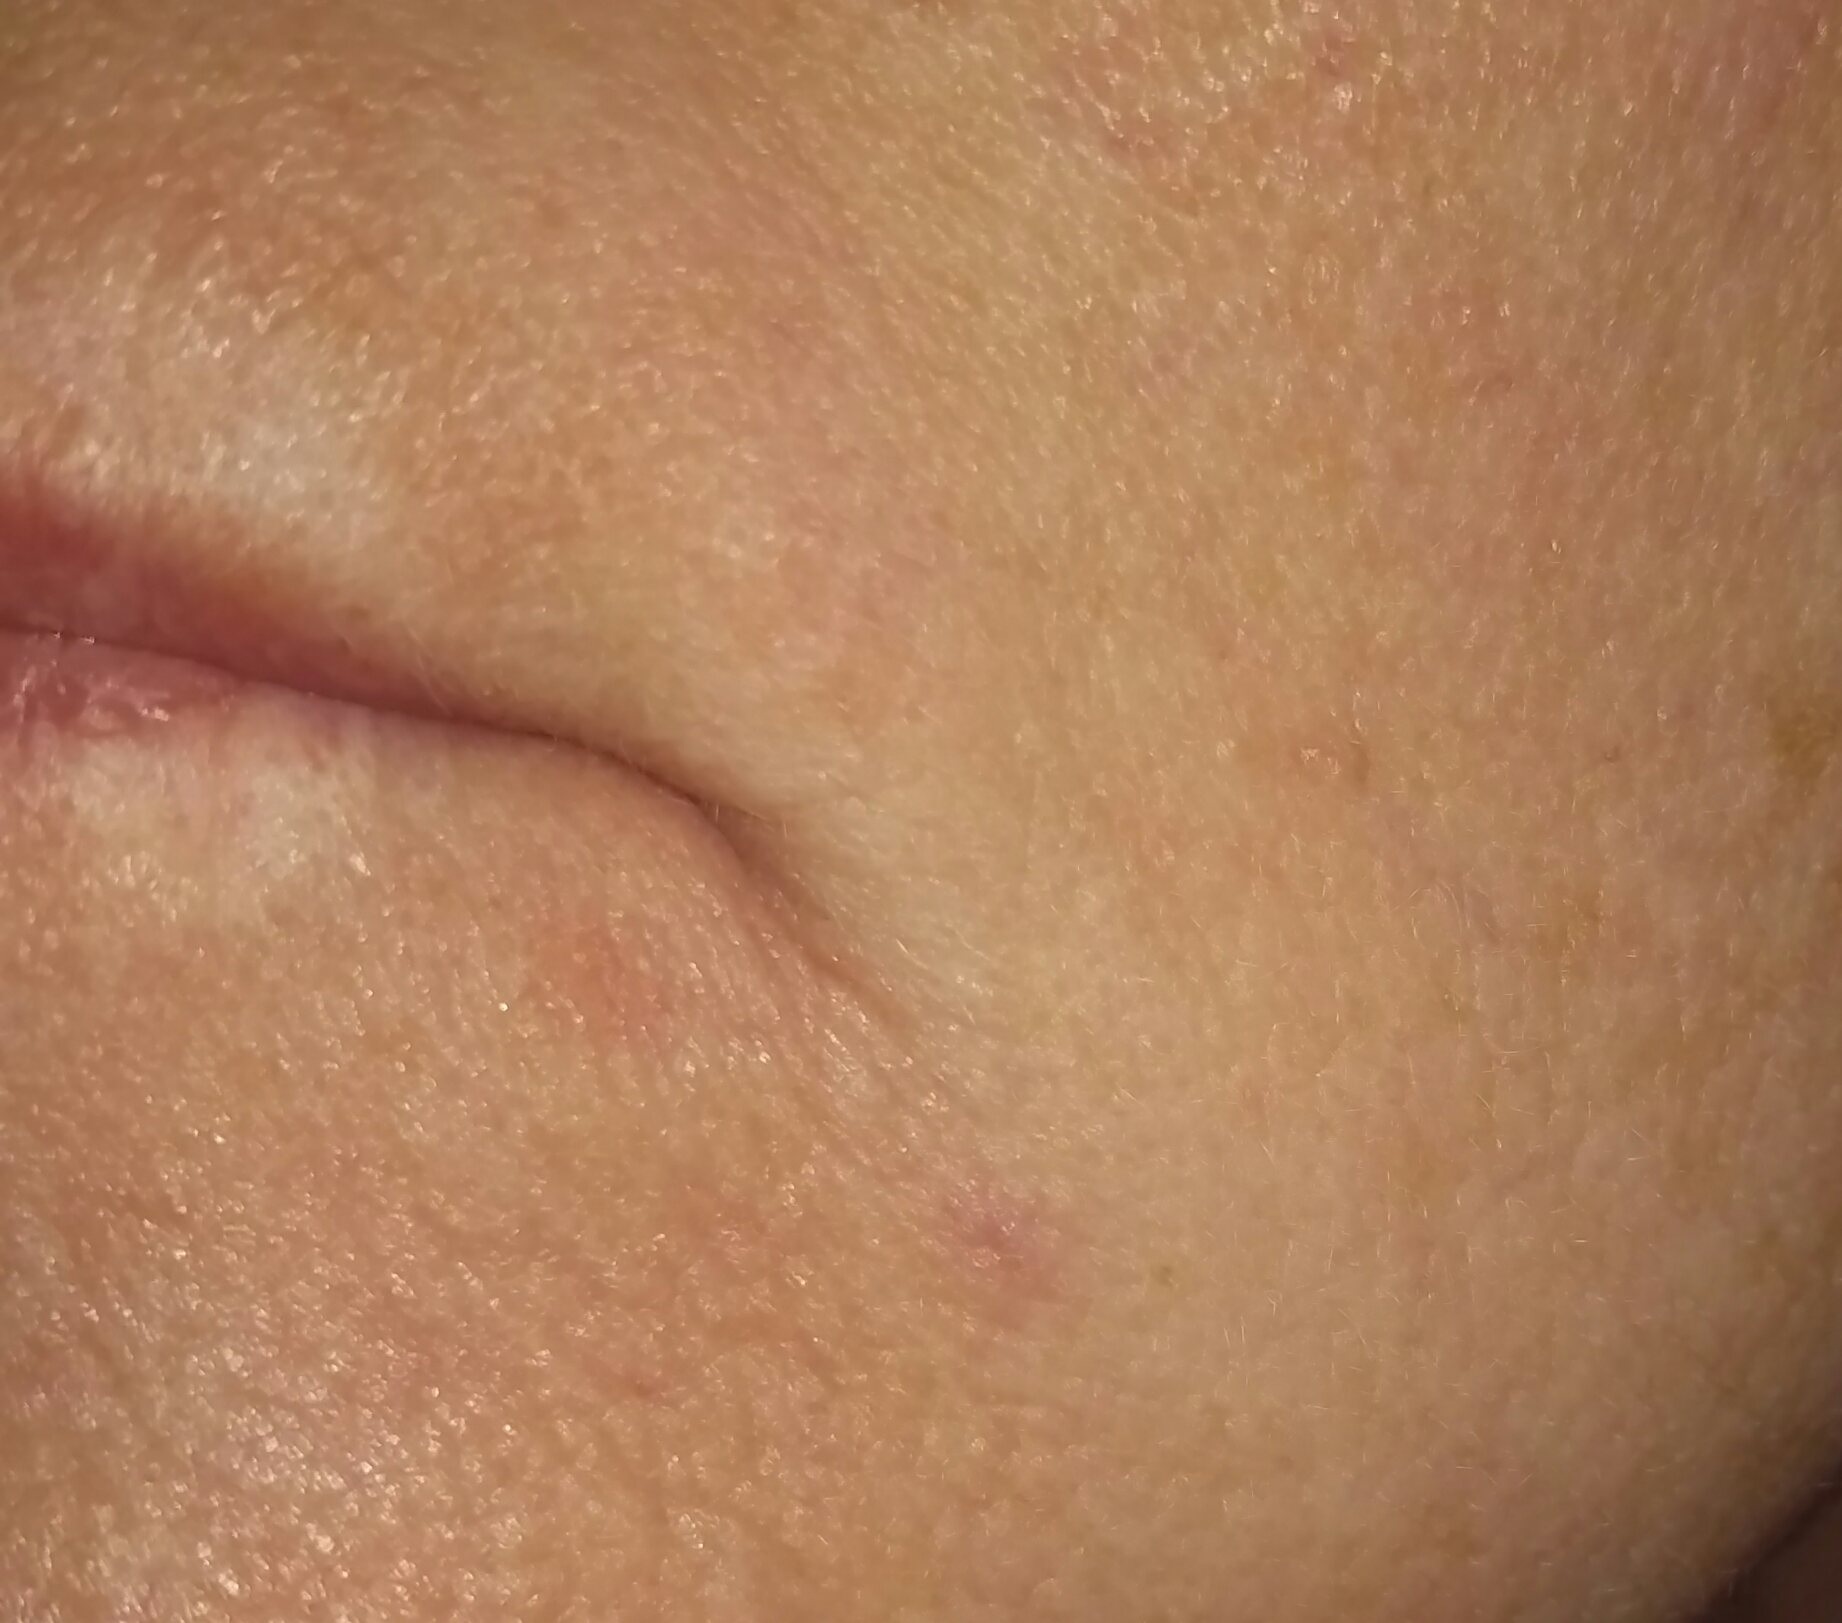 A small red patch of skin on a woman's lip